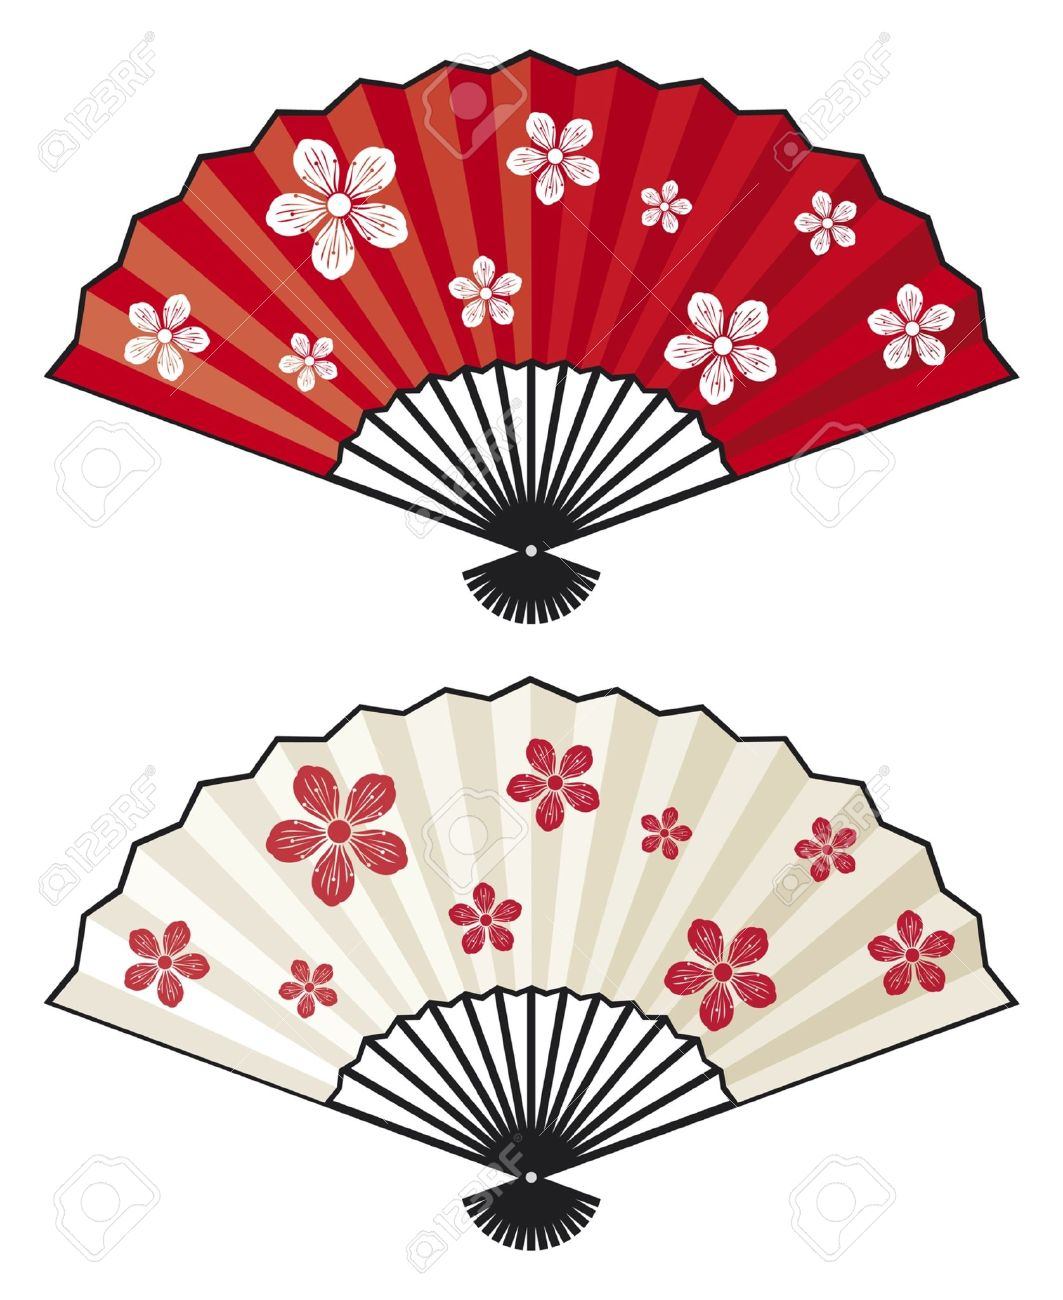 Hand Fan Drawing At Getdrawings Com Free For Personal